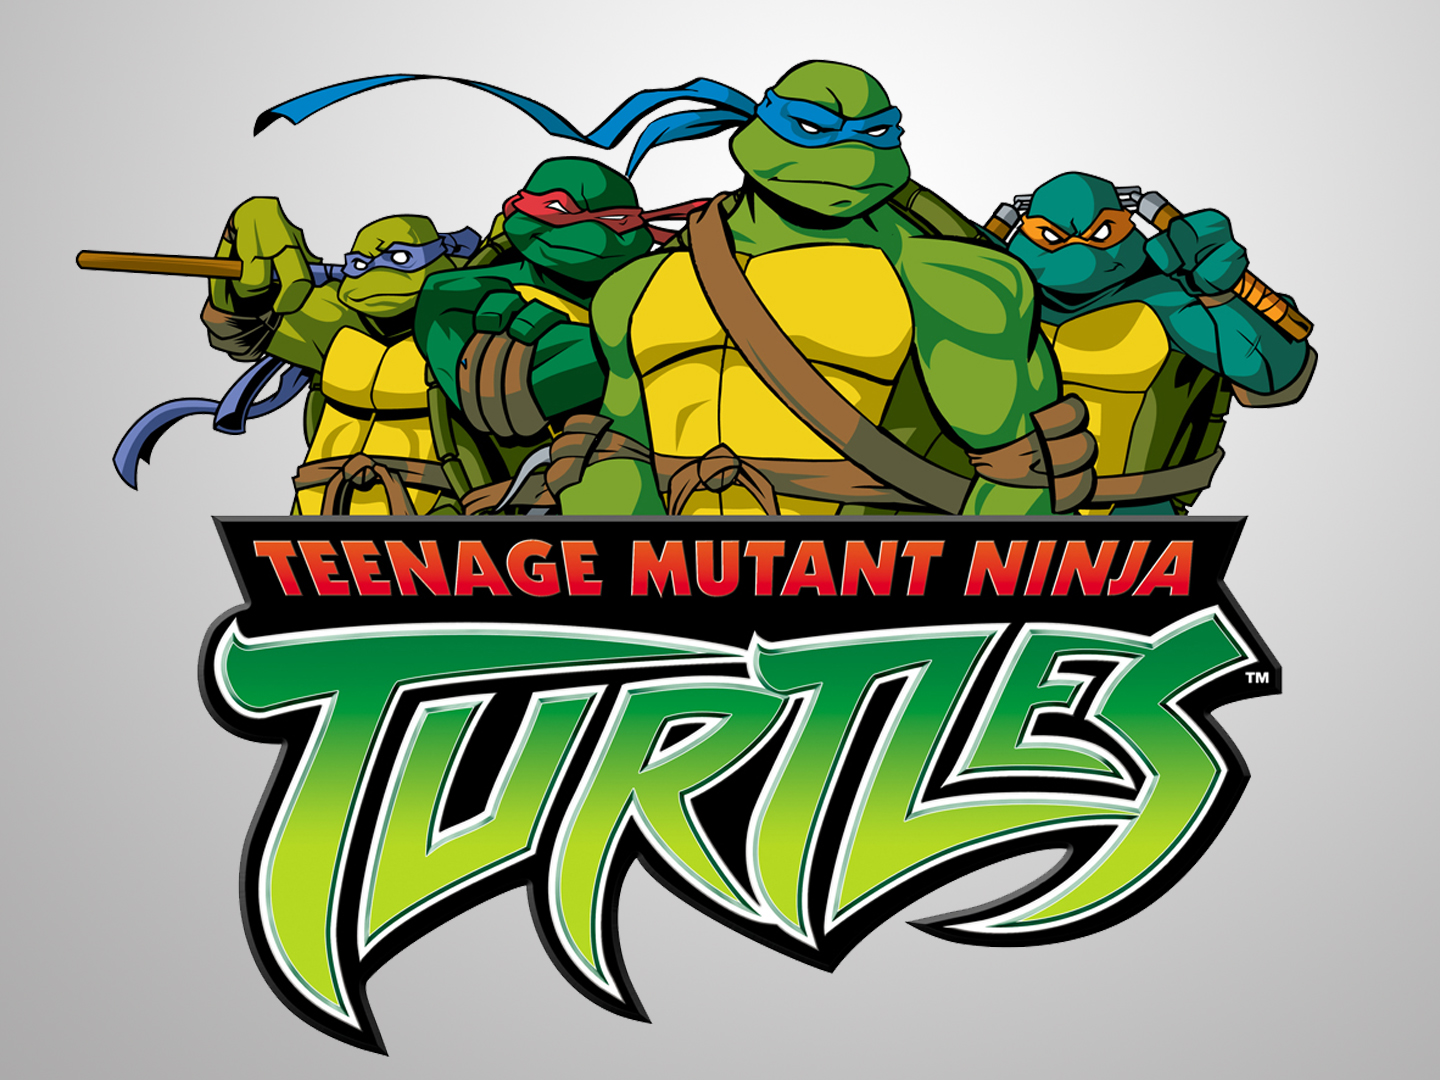 teenage turtle mutant ninja